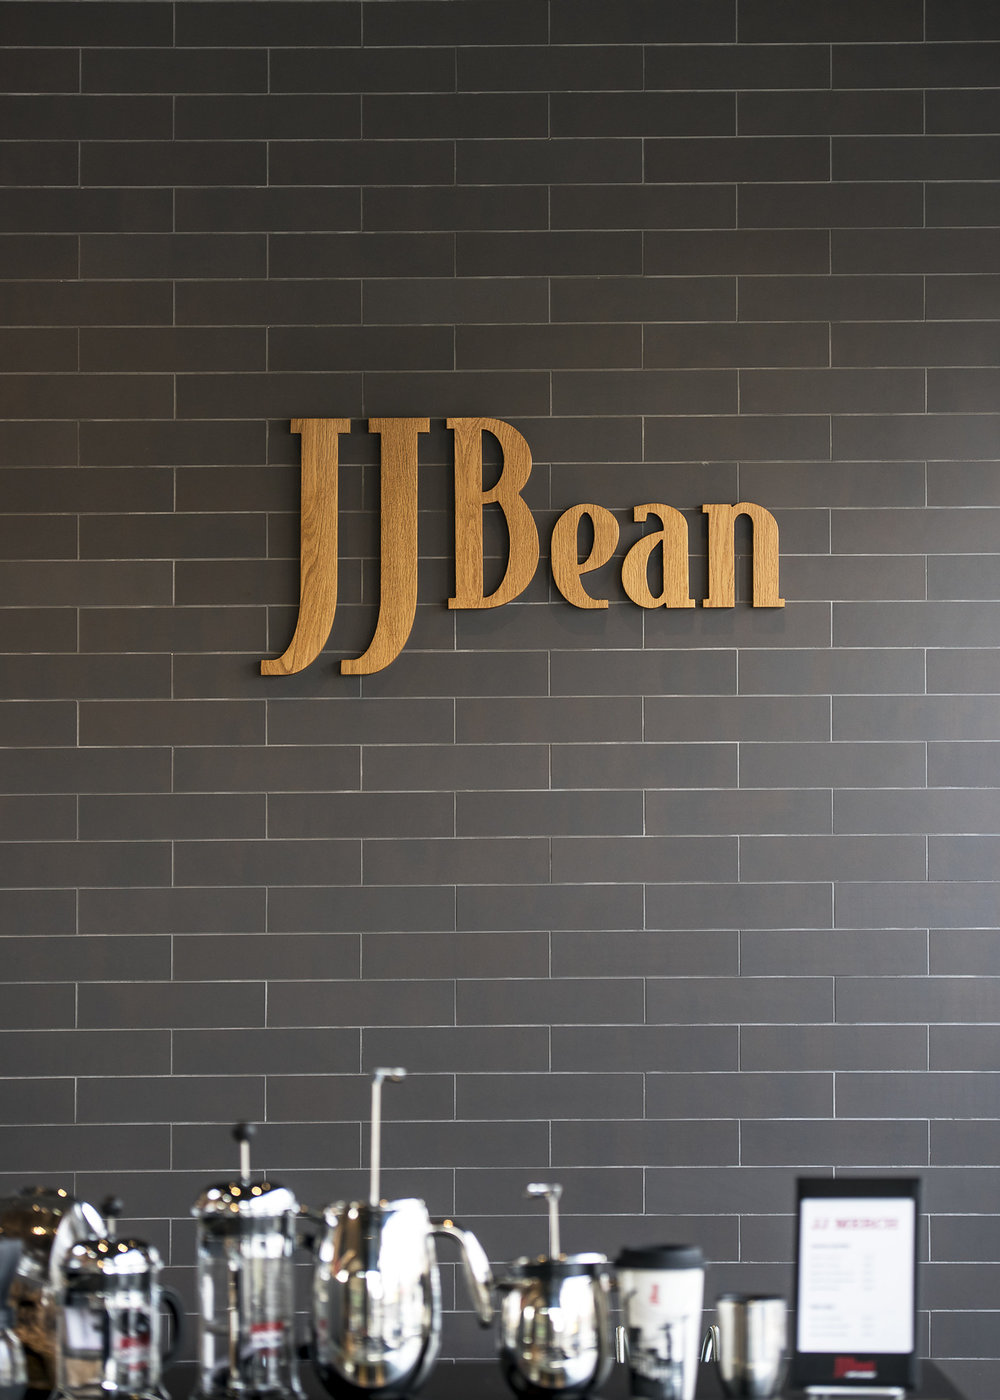 JJ Bean coffee shop Cambie Street signage architecture Dialog Brett Ryan Studios